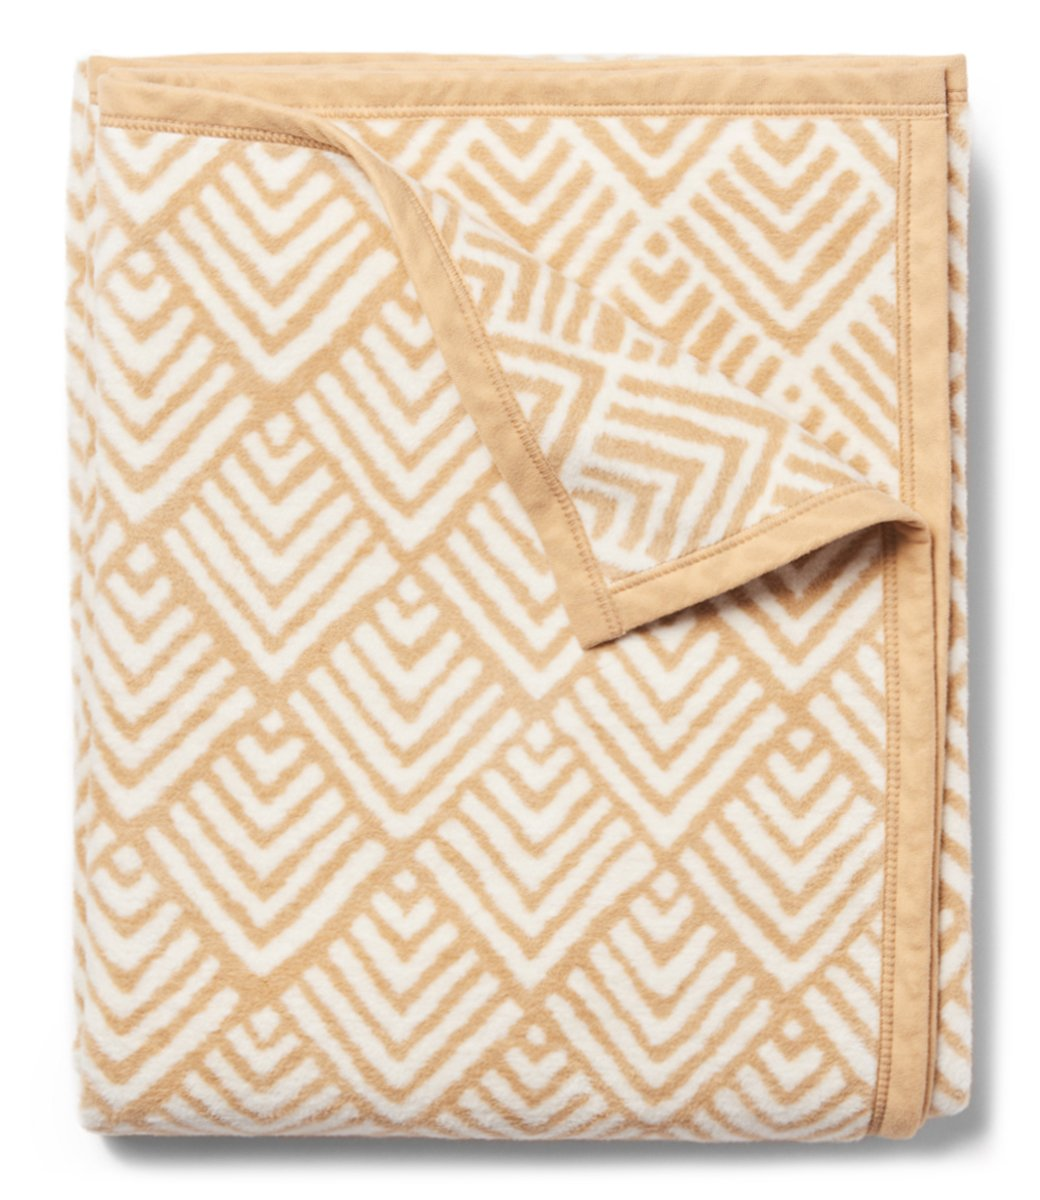 Oyster Cove Diamonds Camel Blanket